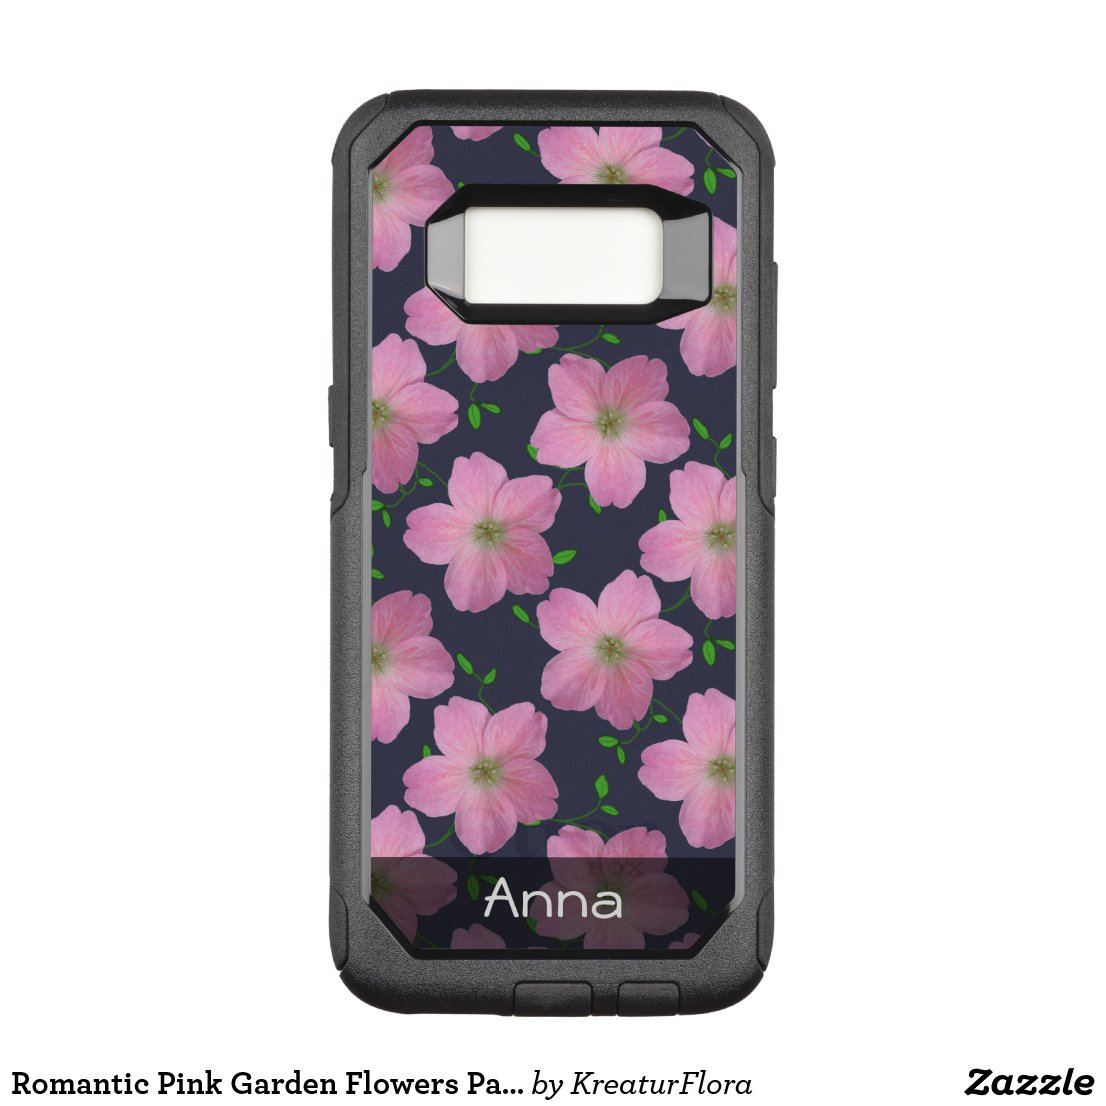 Romantic Pink Garden Flowers Pattern any Text